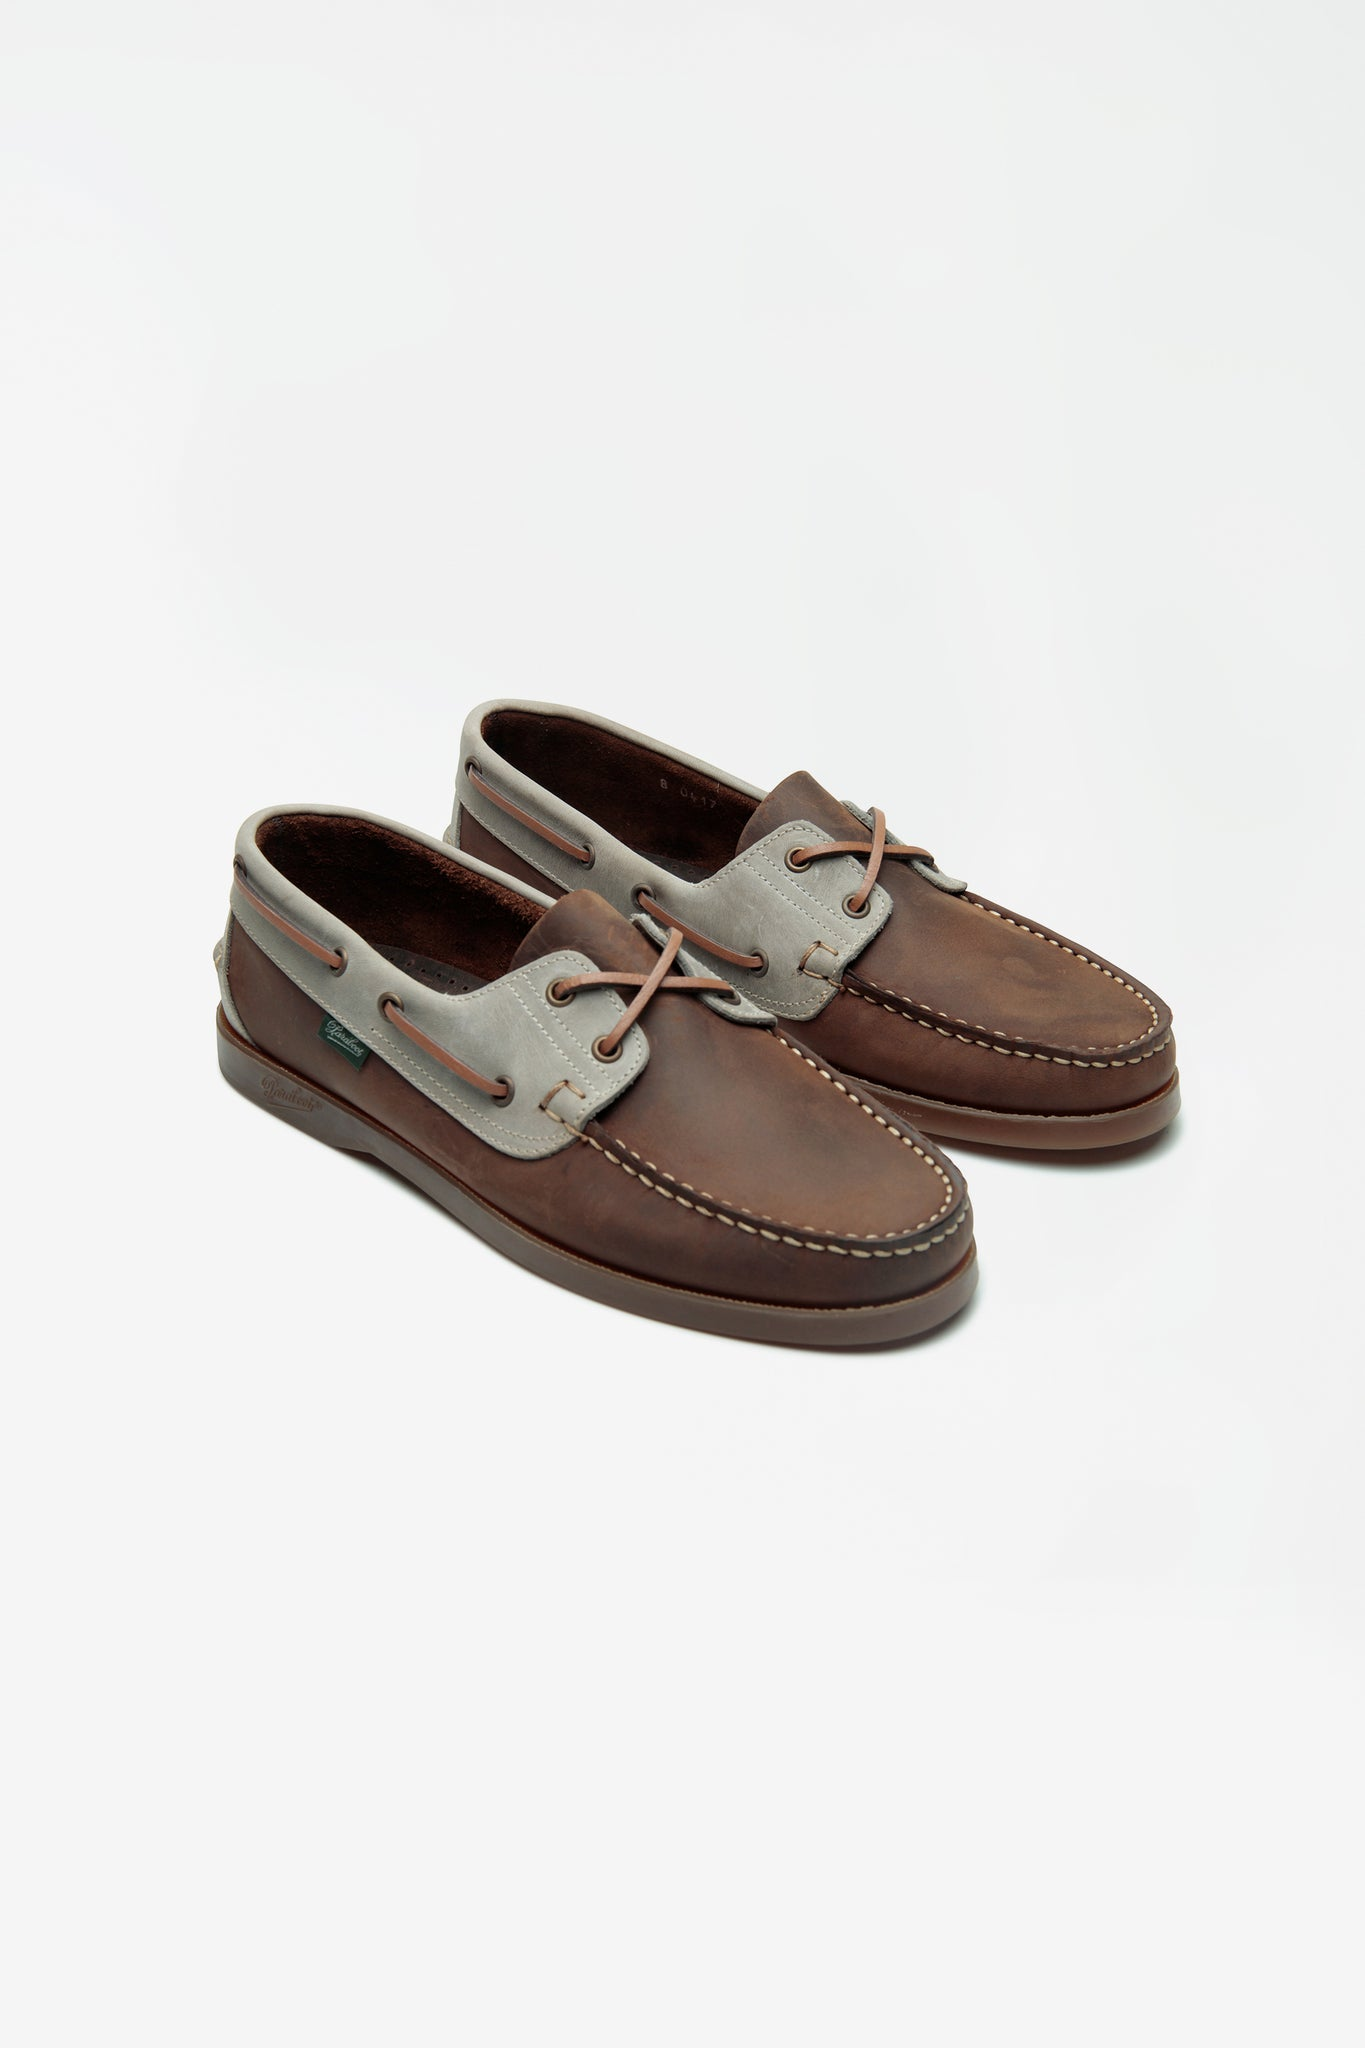 Barth nubuck grey/ brown